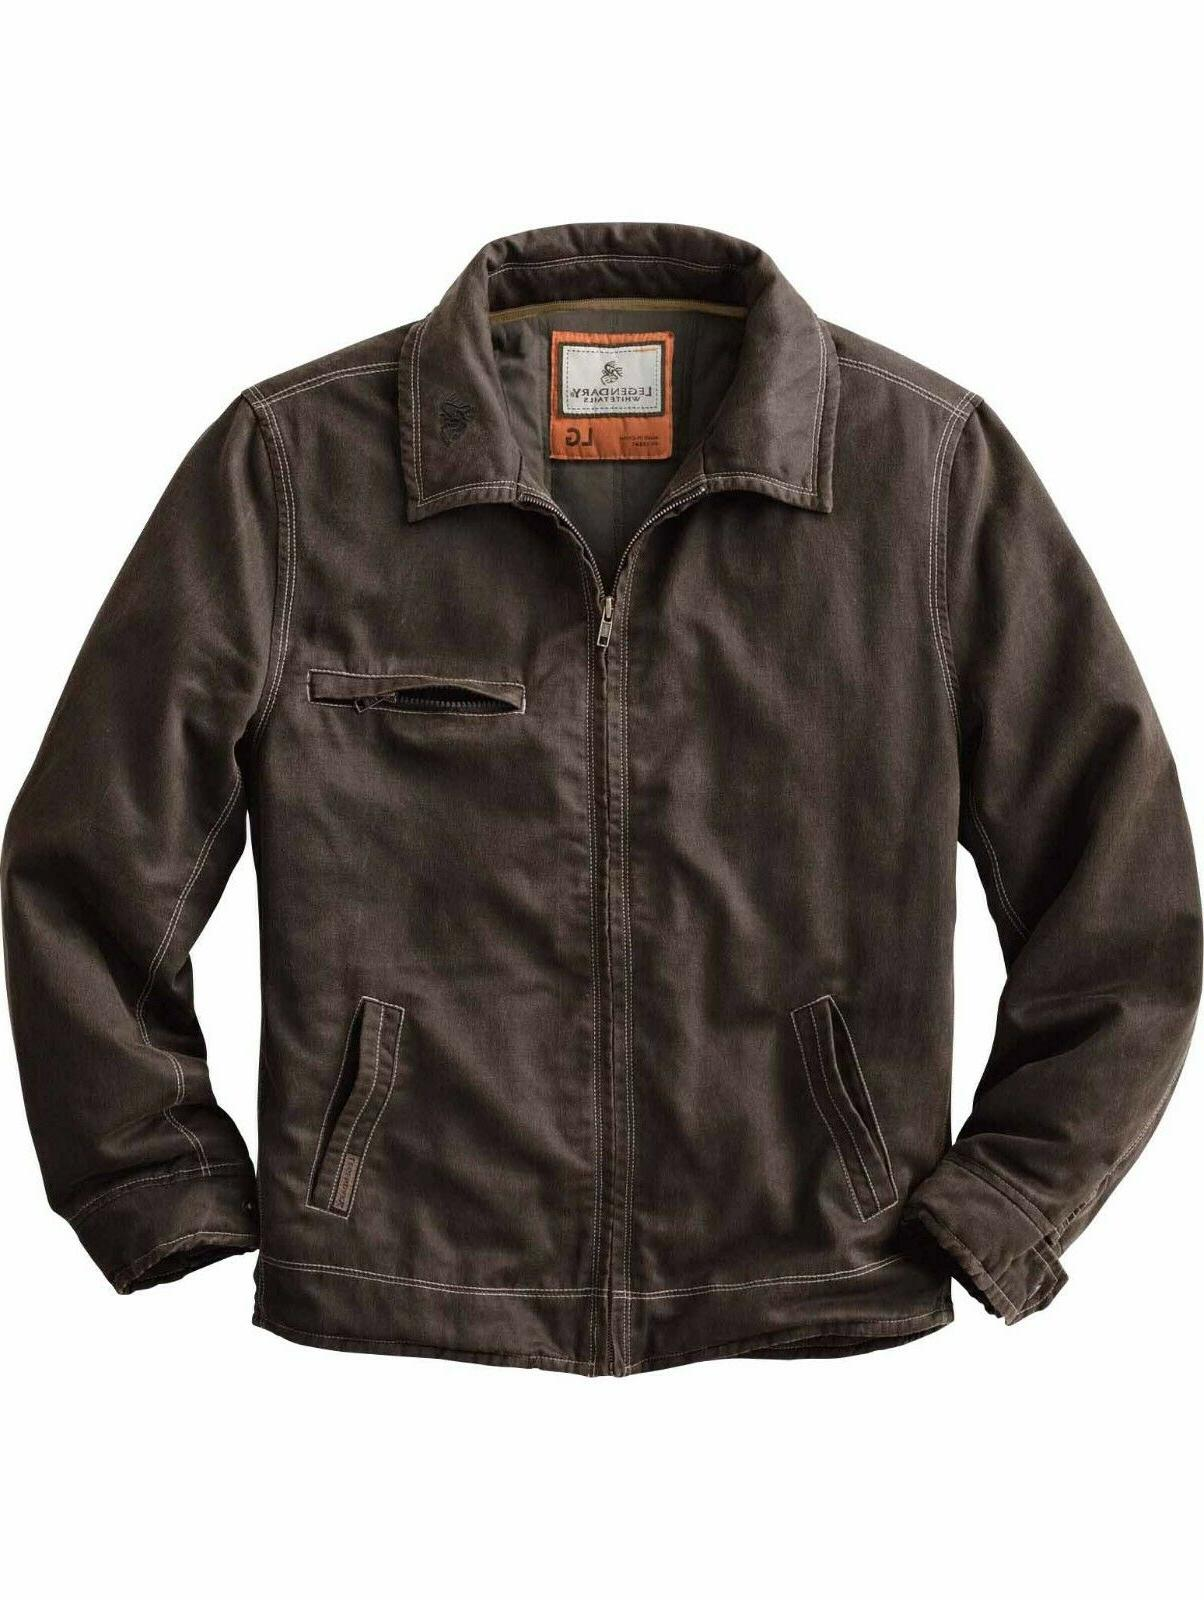 NEW! Legendary Rugged Full Zip Jacket - VARIETY